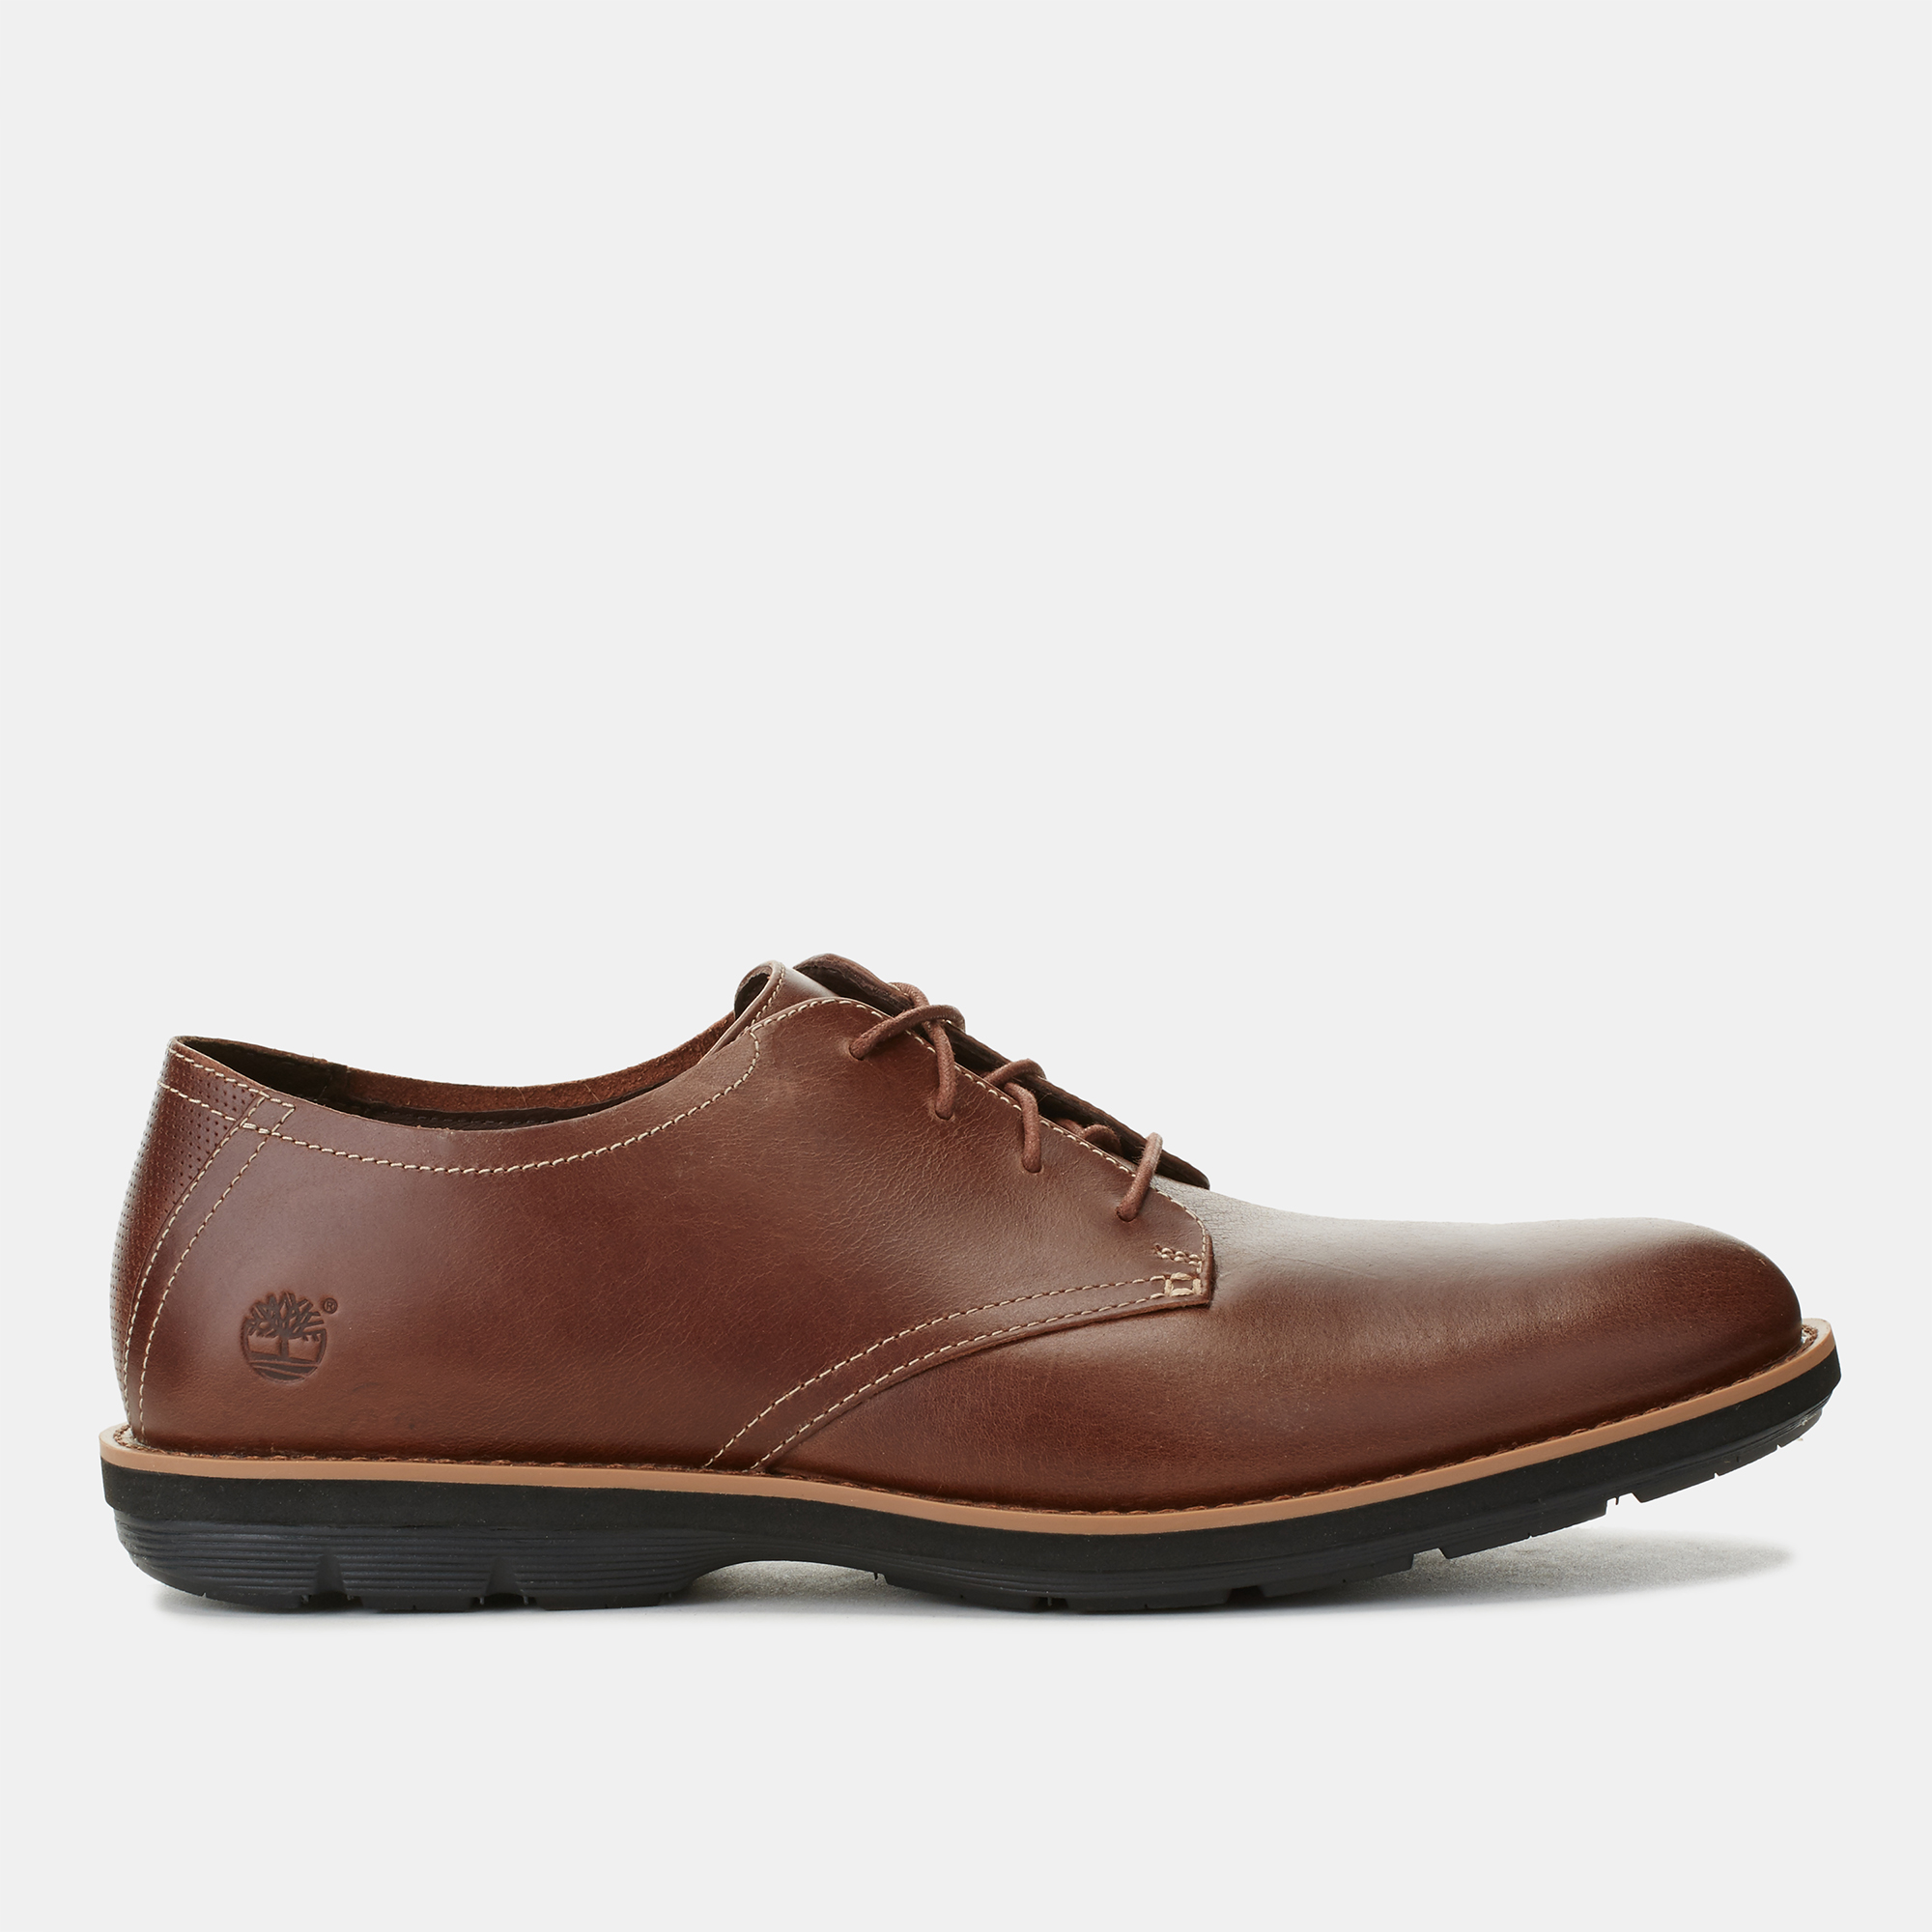 Shop Brown Timberland Kempton Oxford Shoe for Mens by